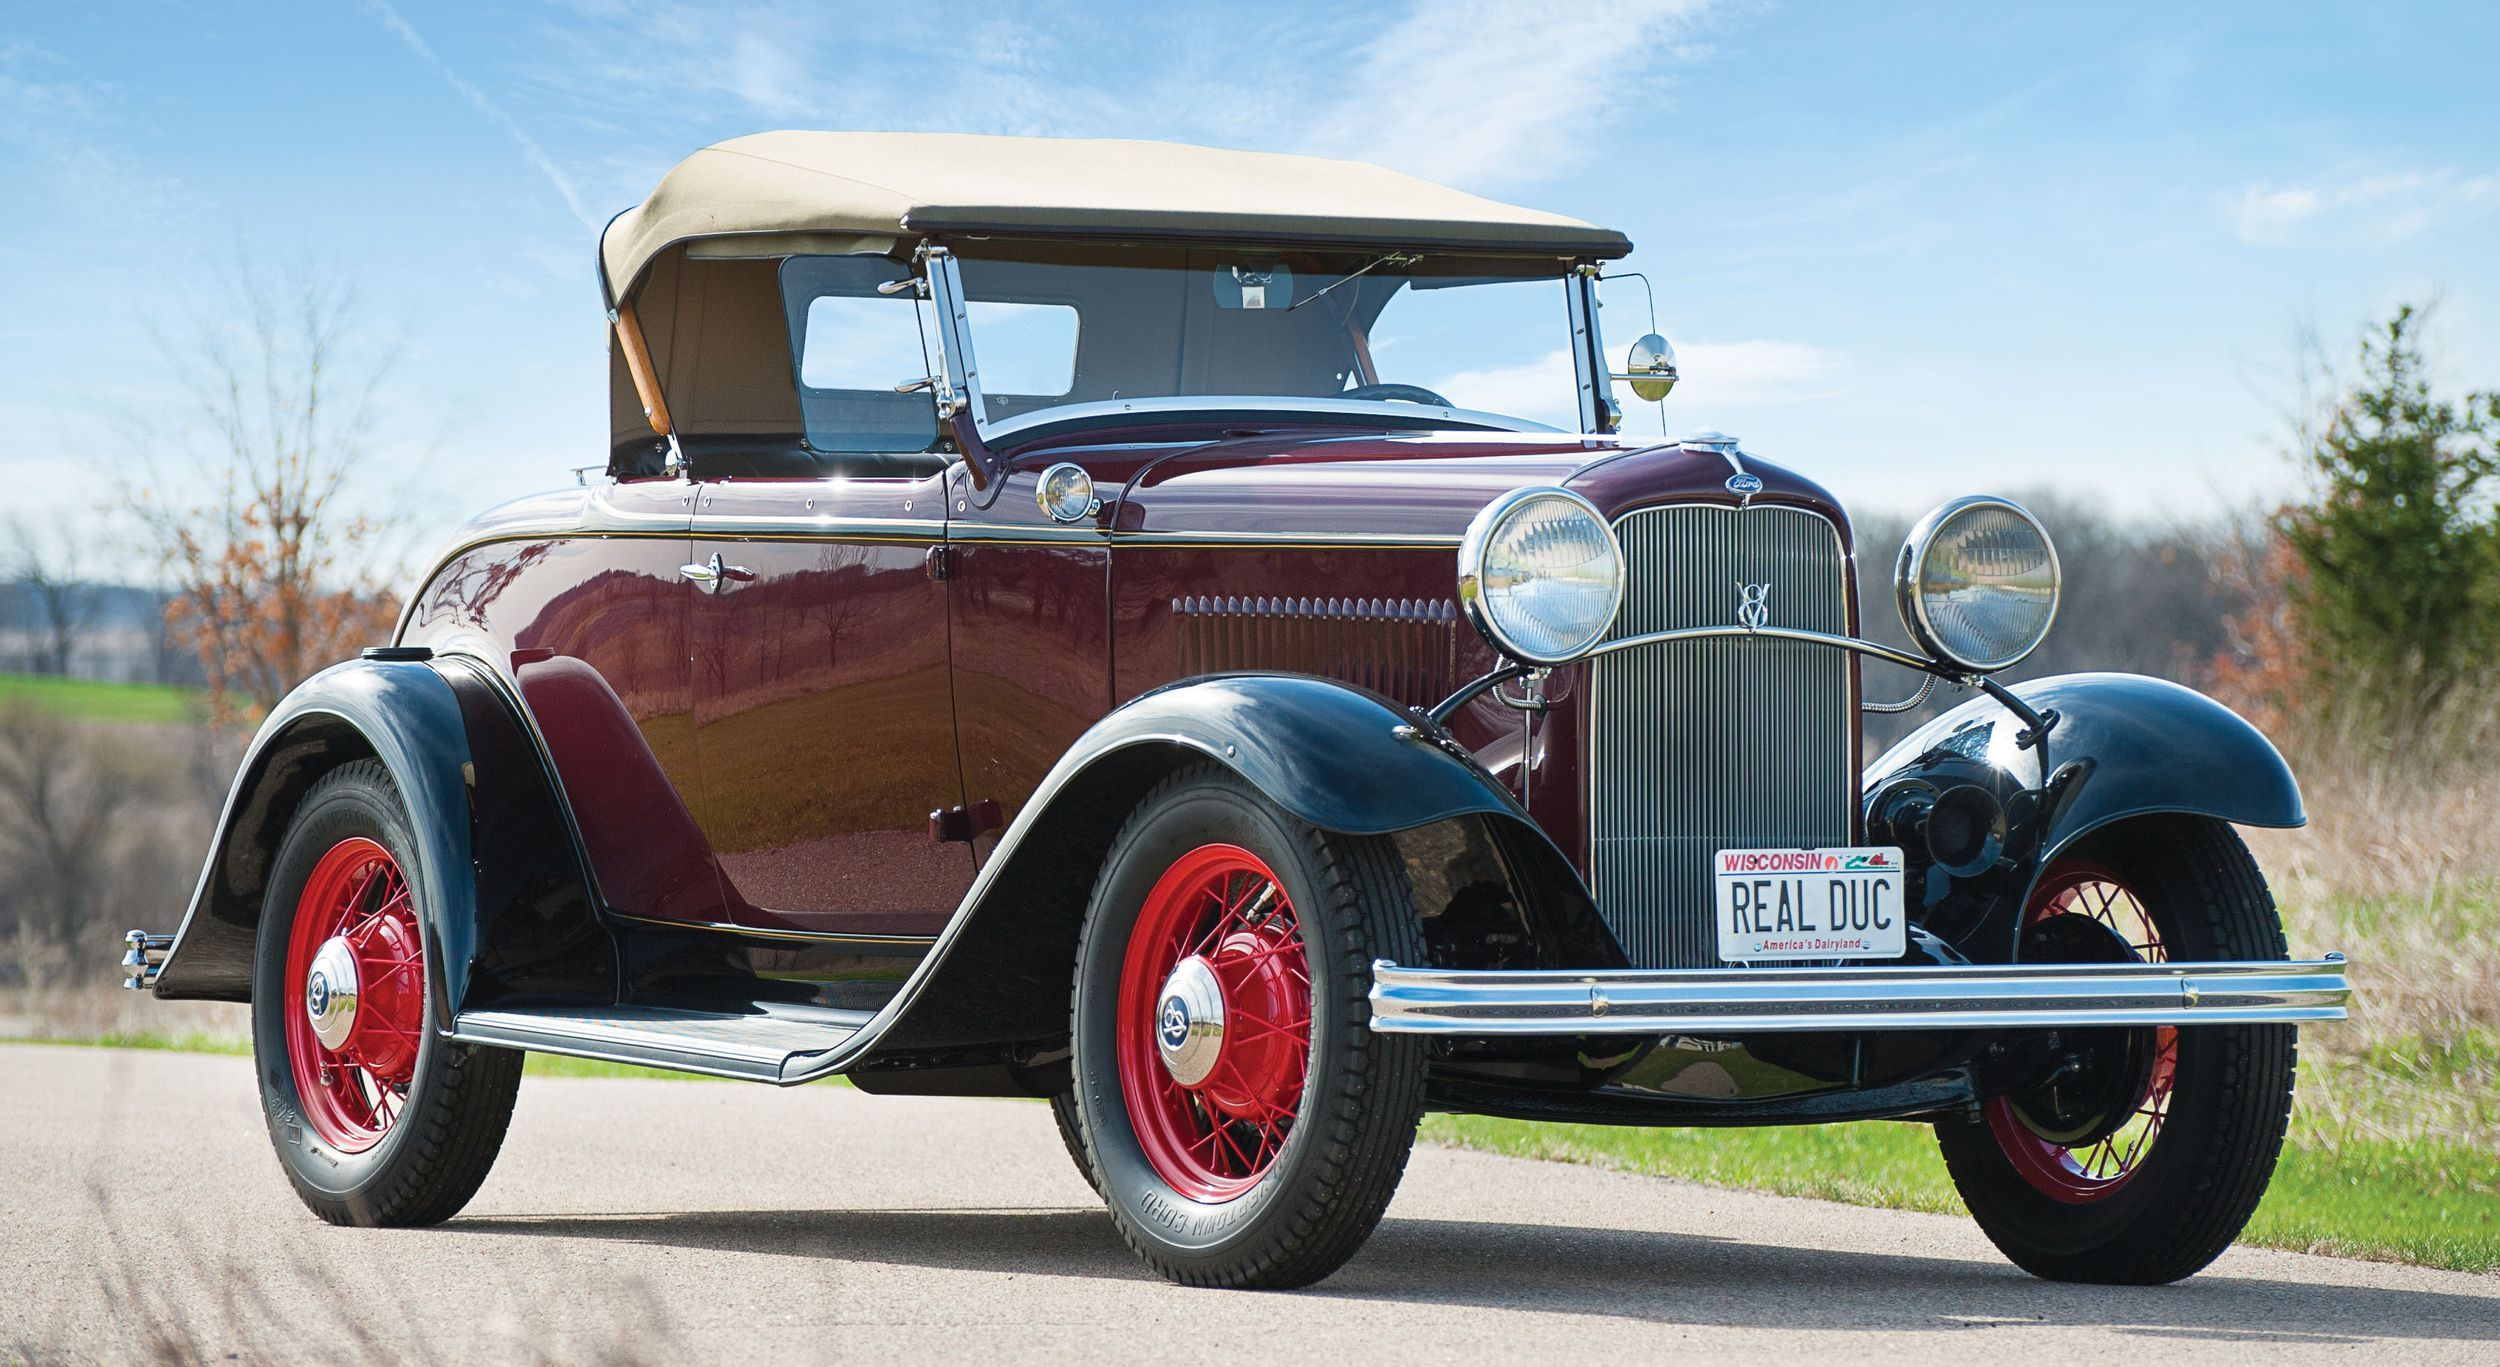 1932 Ford V-8 Deluxe Roadster | classic fords at car show ...